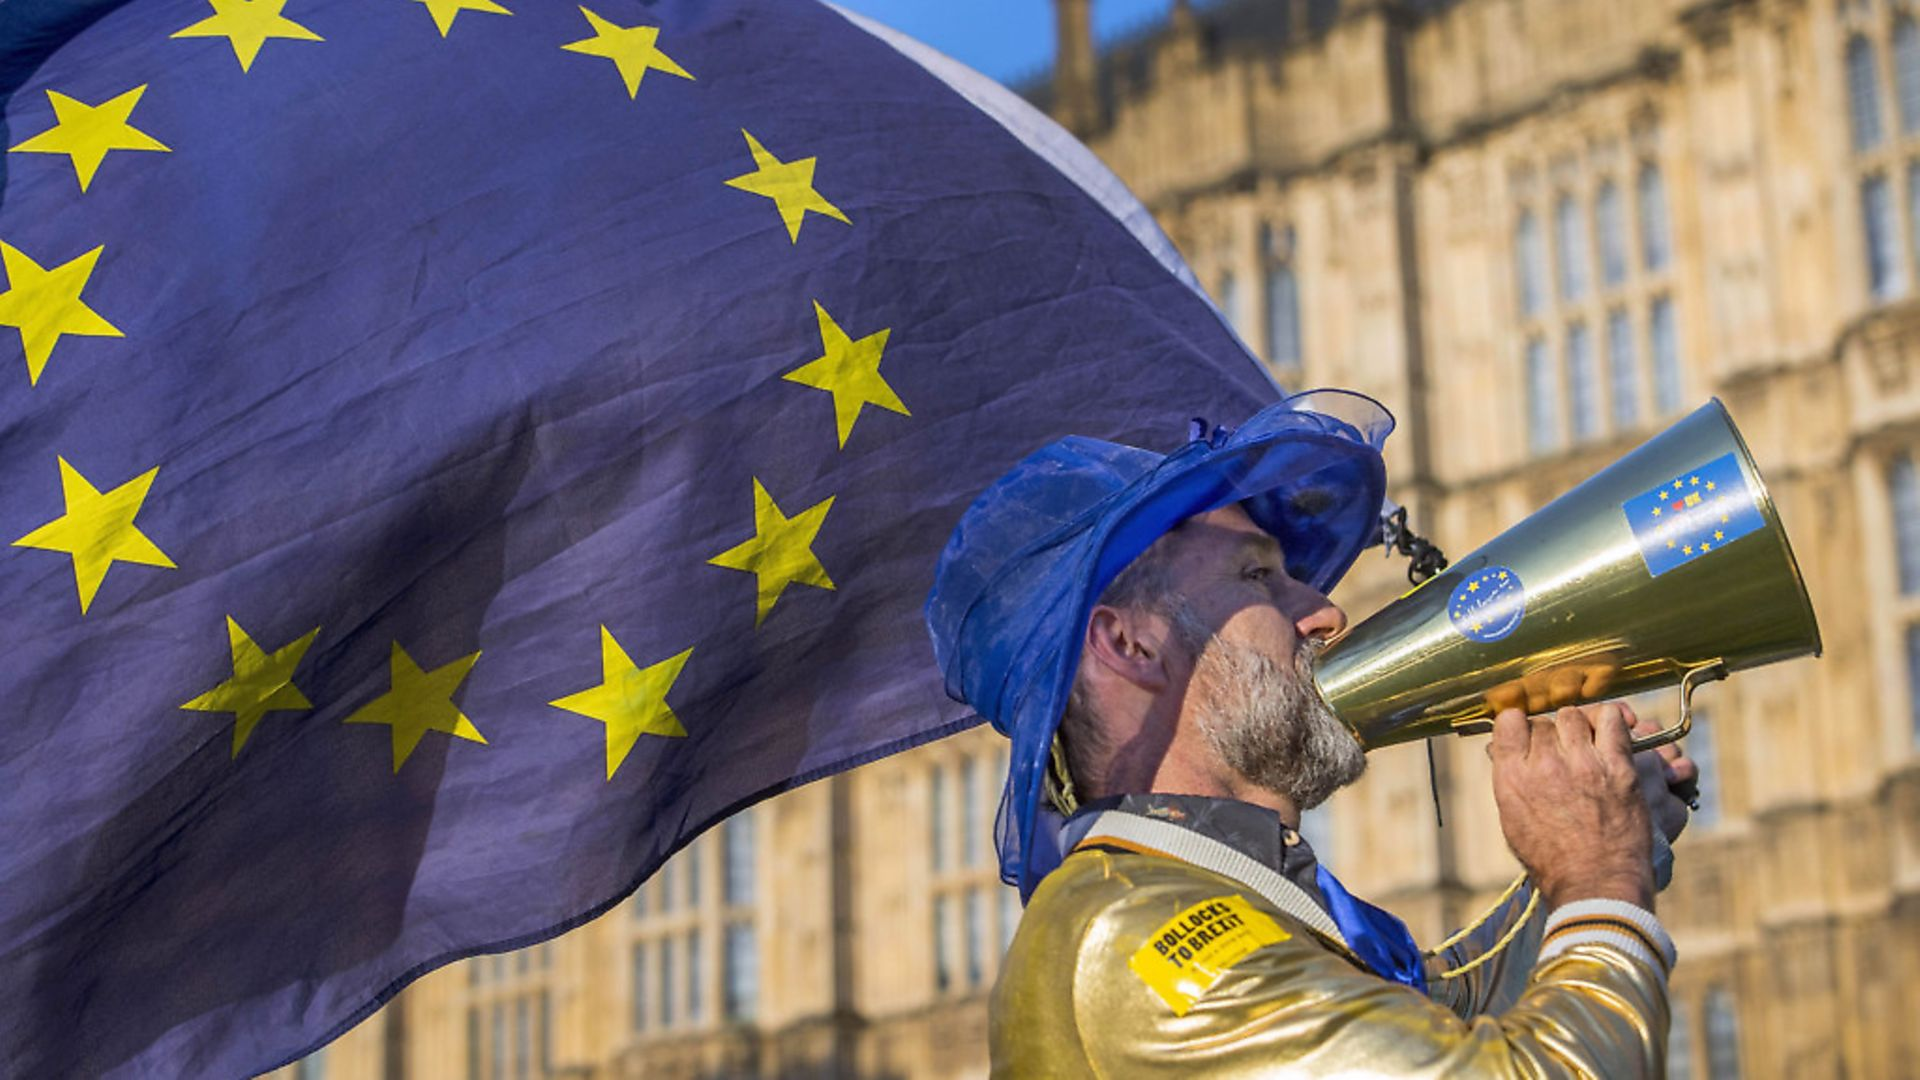 Pro-European Union and anti-Brexit demonstrators protest outside the Houses of Parliament in central London, as the Commons debate on the European Union (Withdrawal) Bill takes place.Picture: PA/Victoria Jones - Credit: PA Wire/PA Images